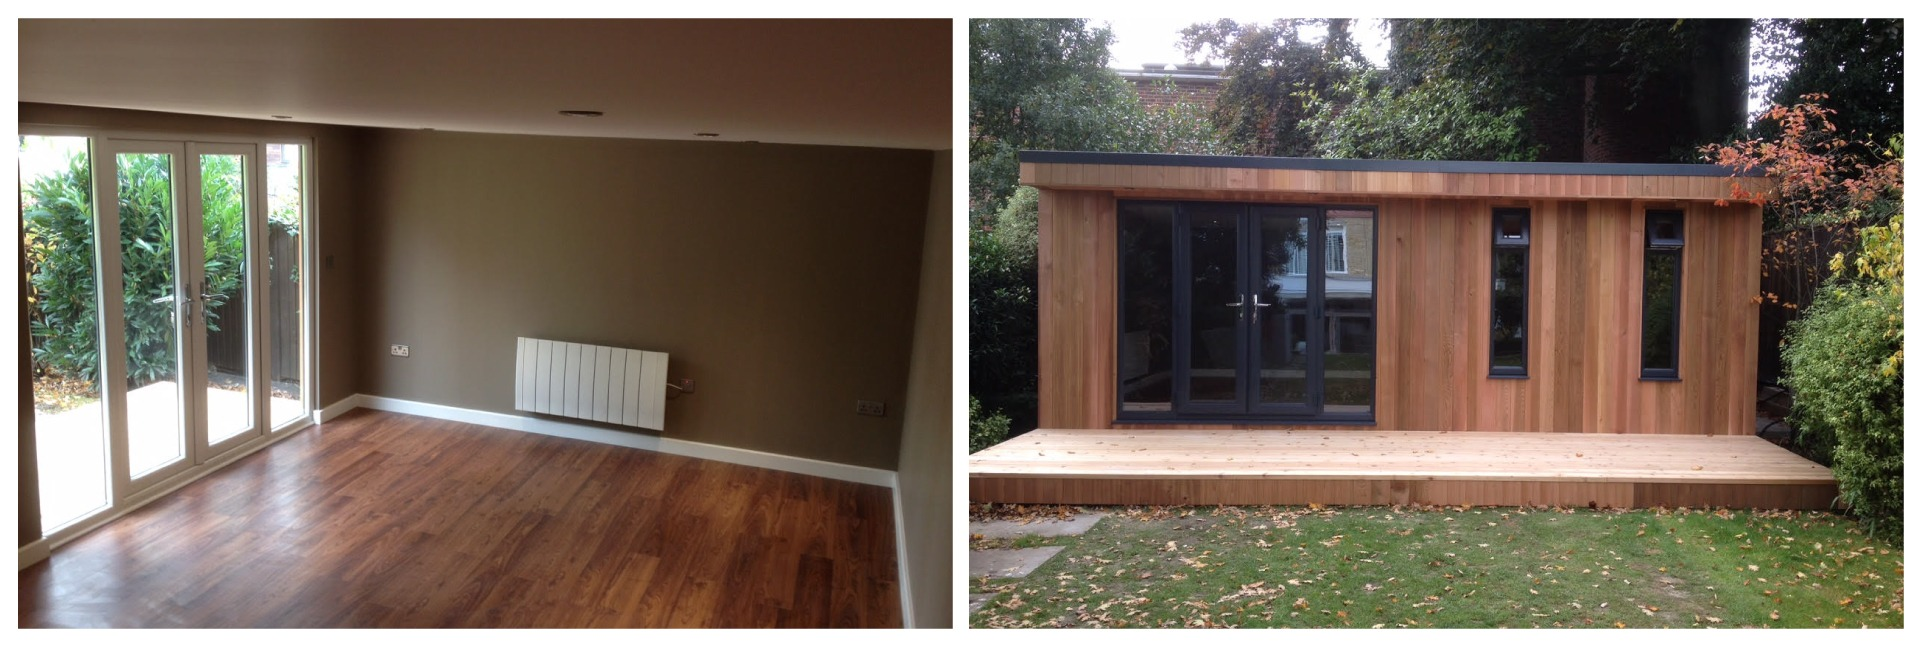 internal and external garden room